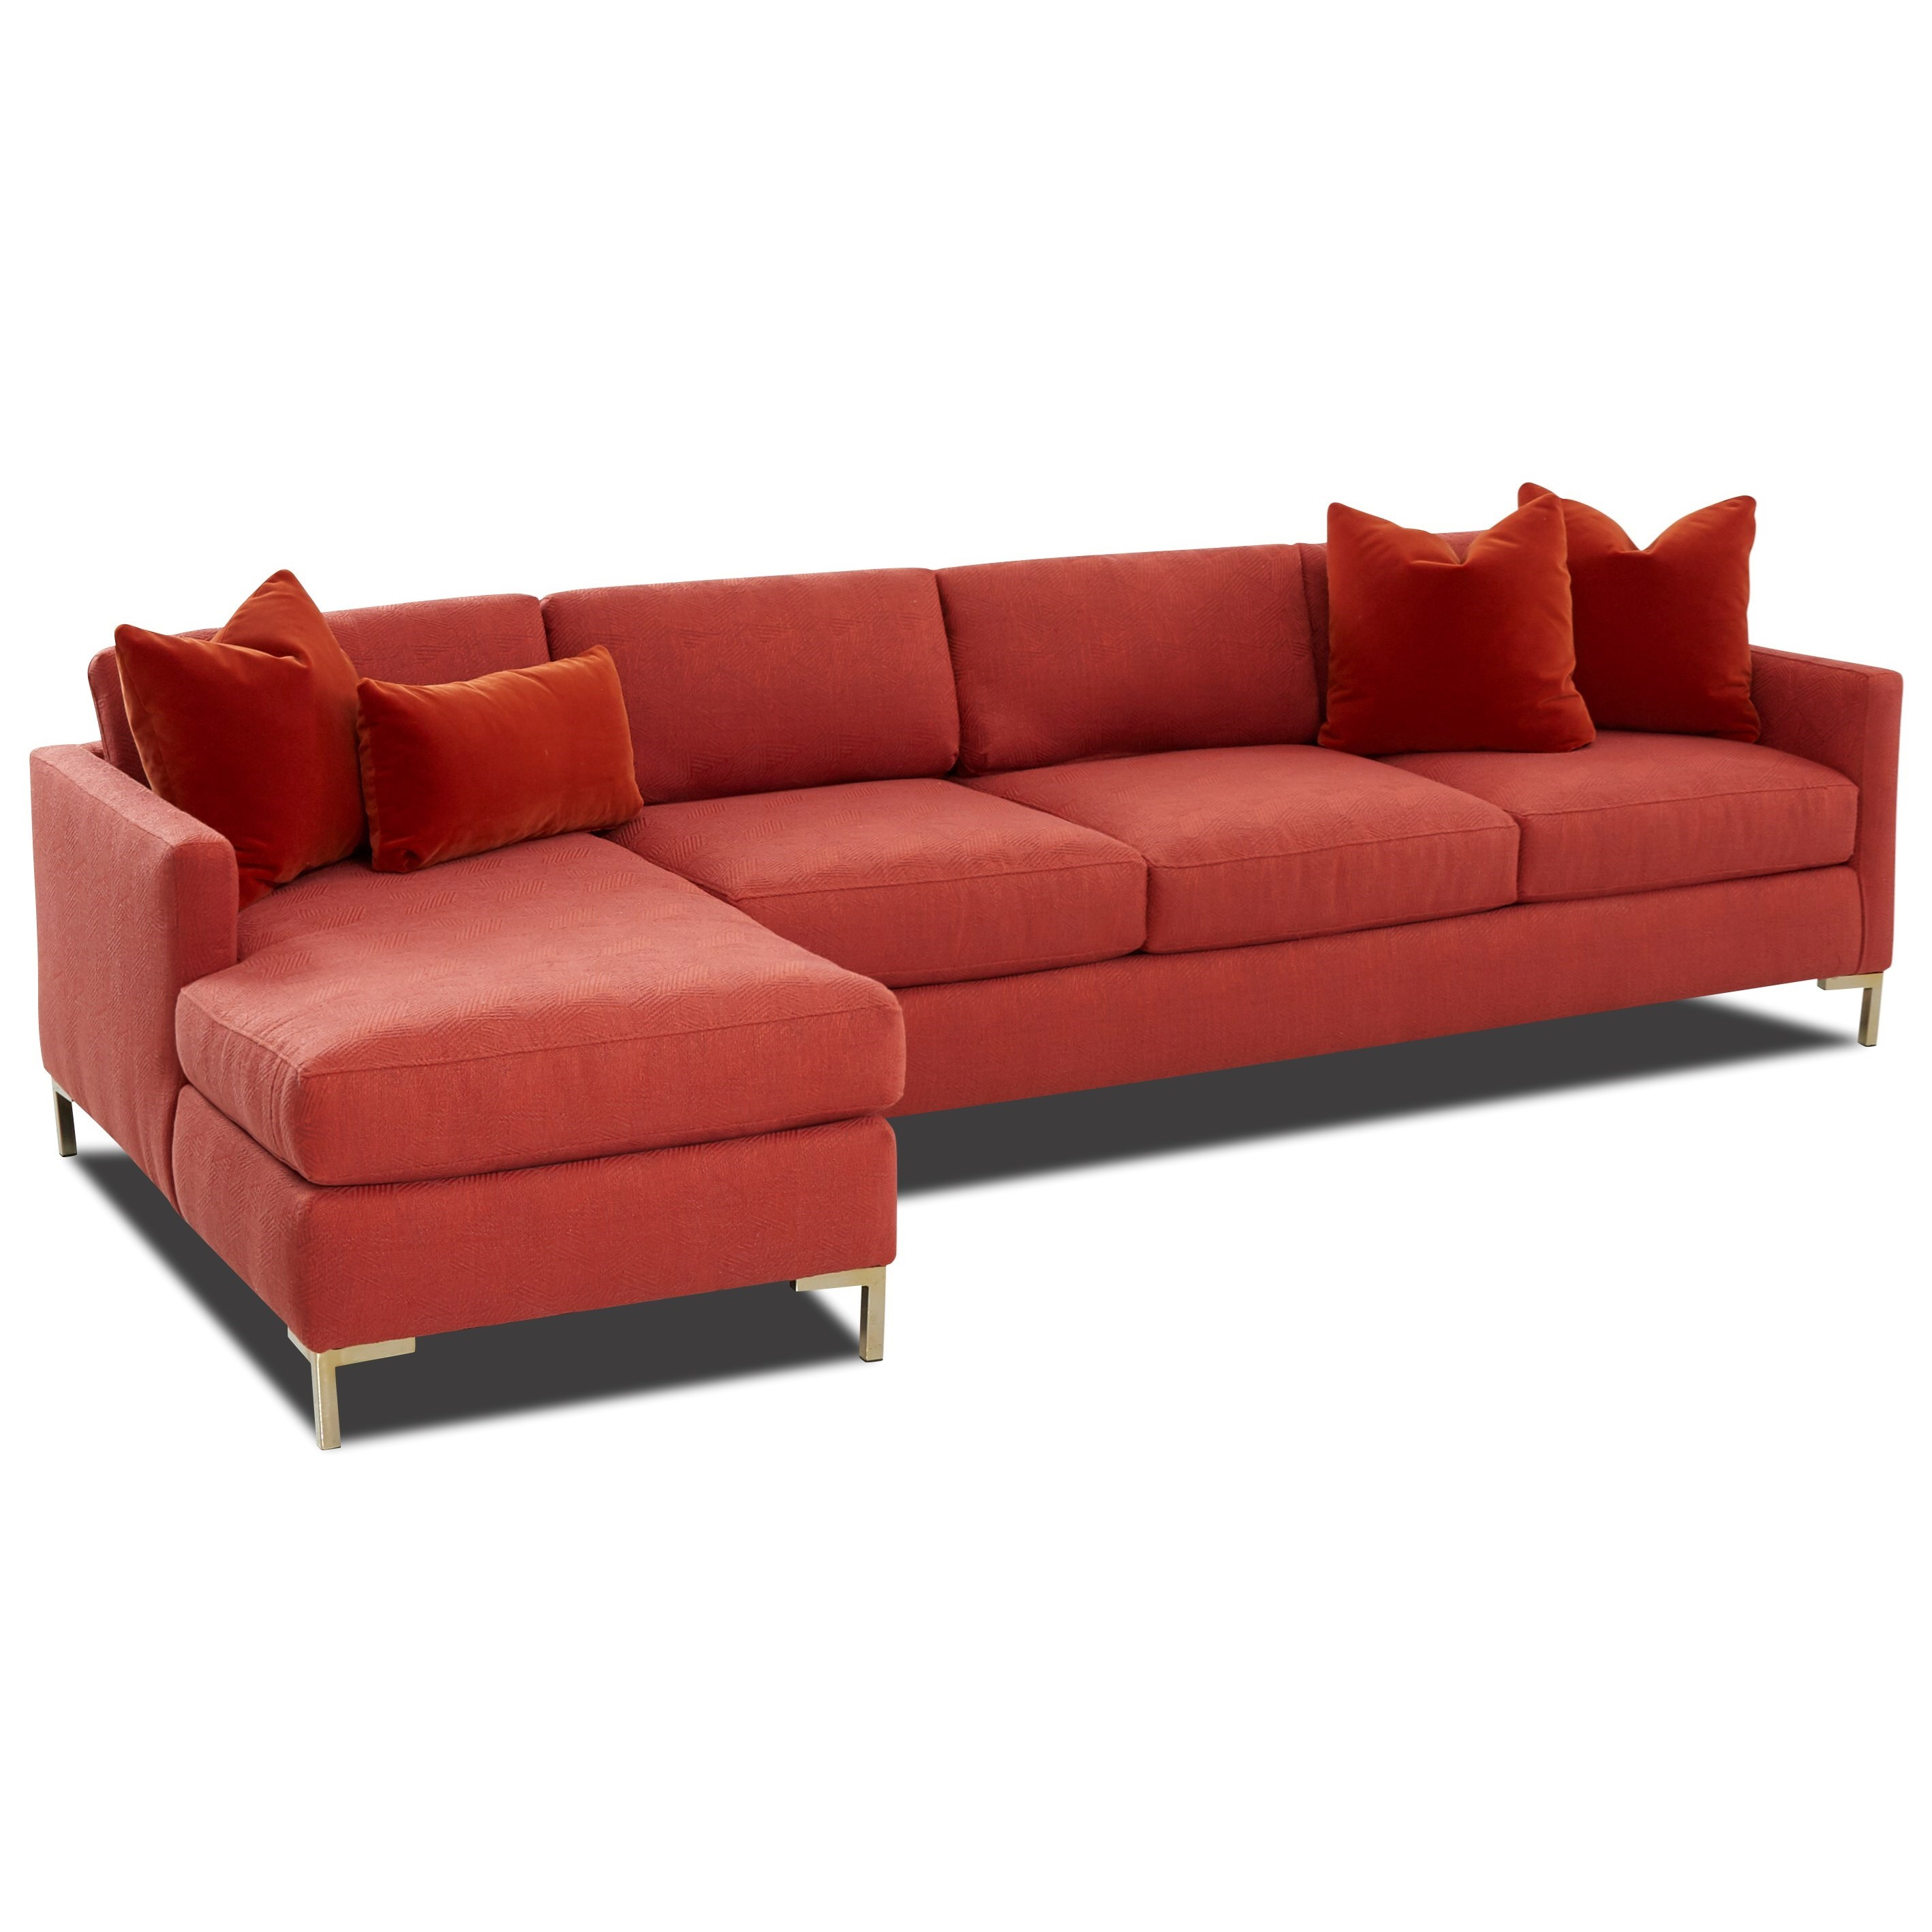 Contemporary 4-Seat Sectional Sofa with Arm Pillows and RAF Chaise